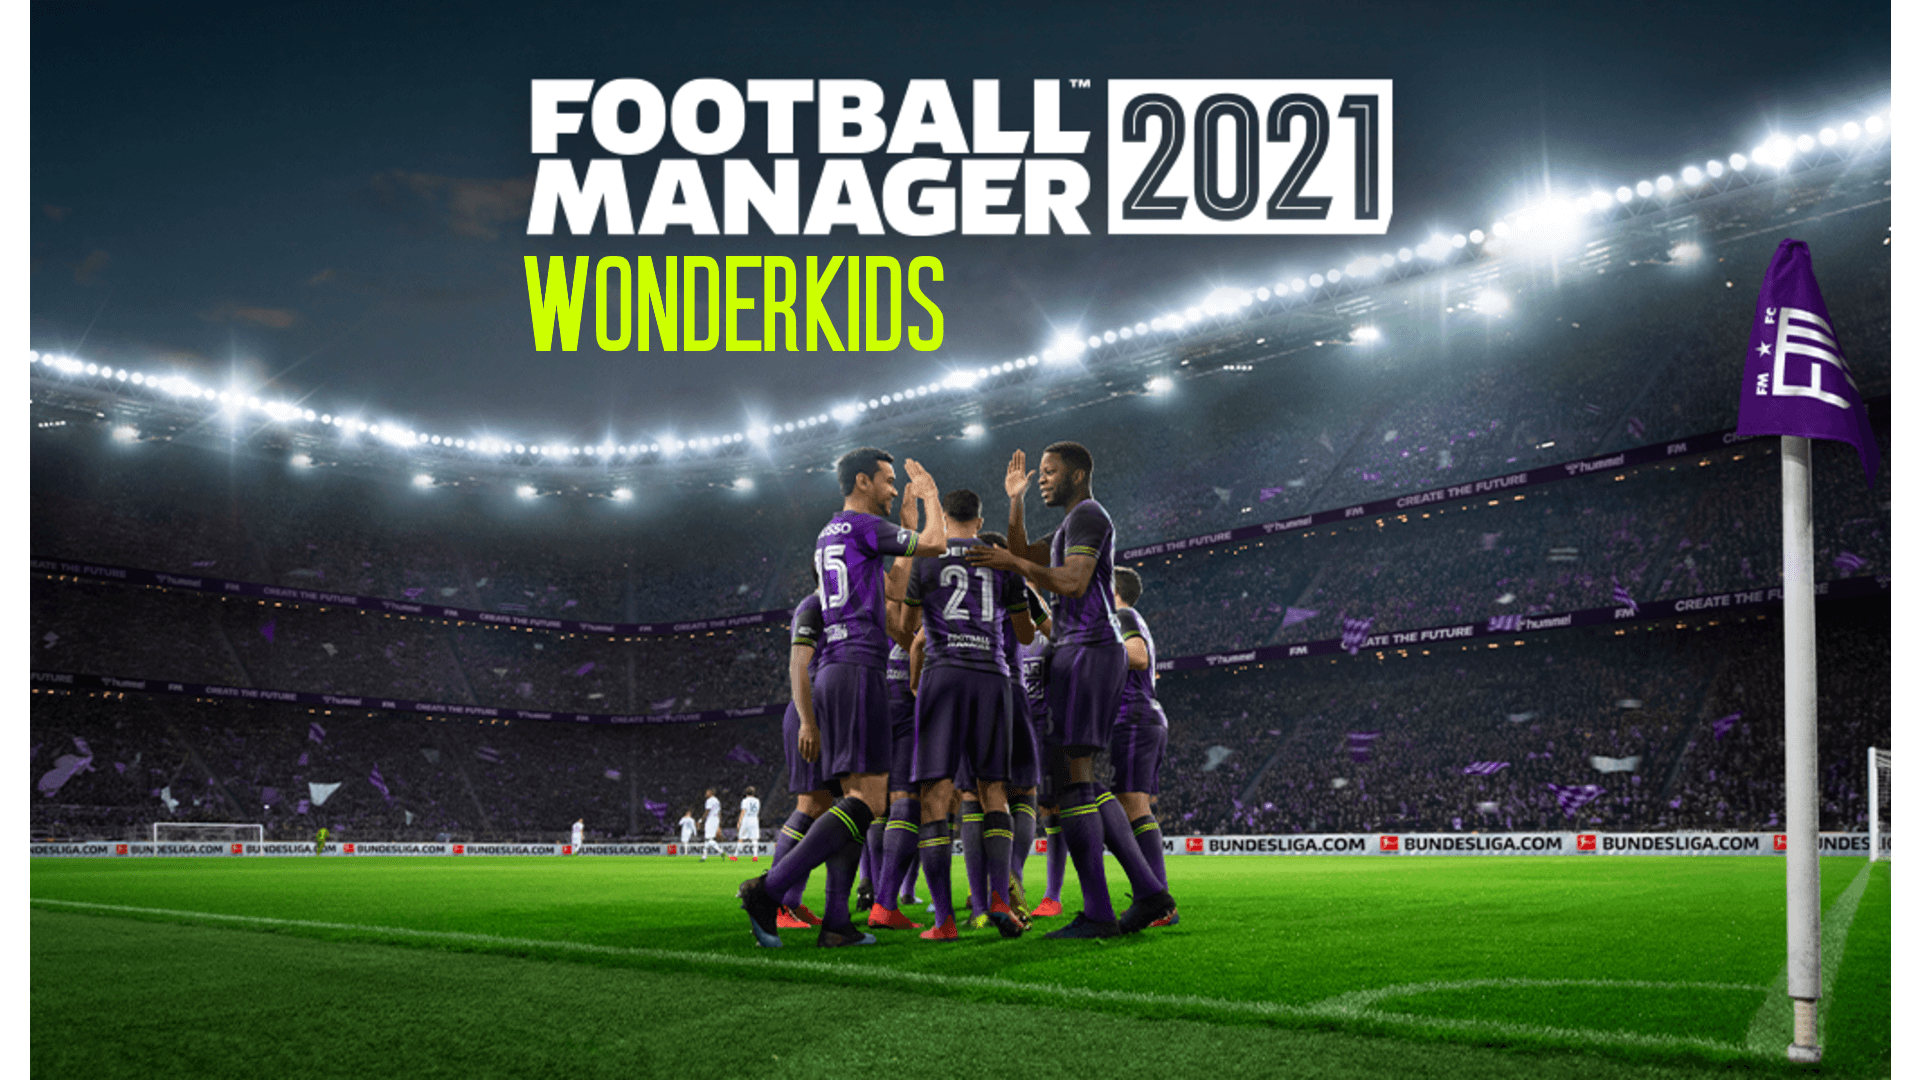 Football Manager 2021 Guide - How to Scout the Best Wonderkids